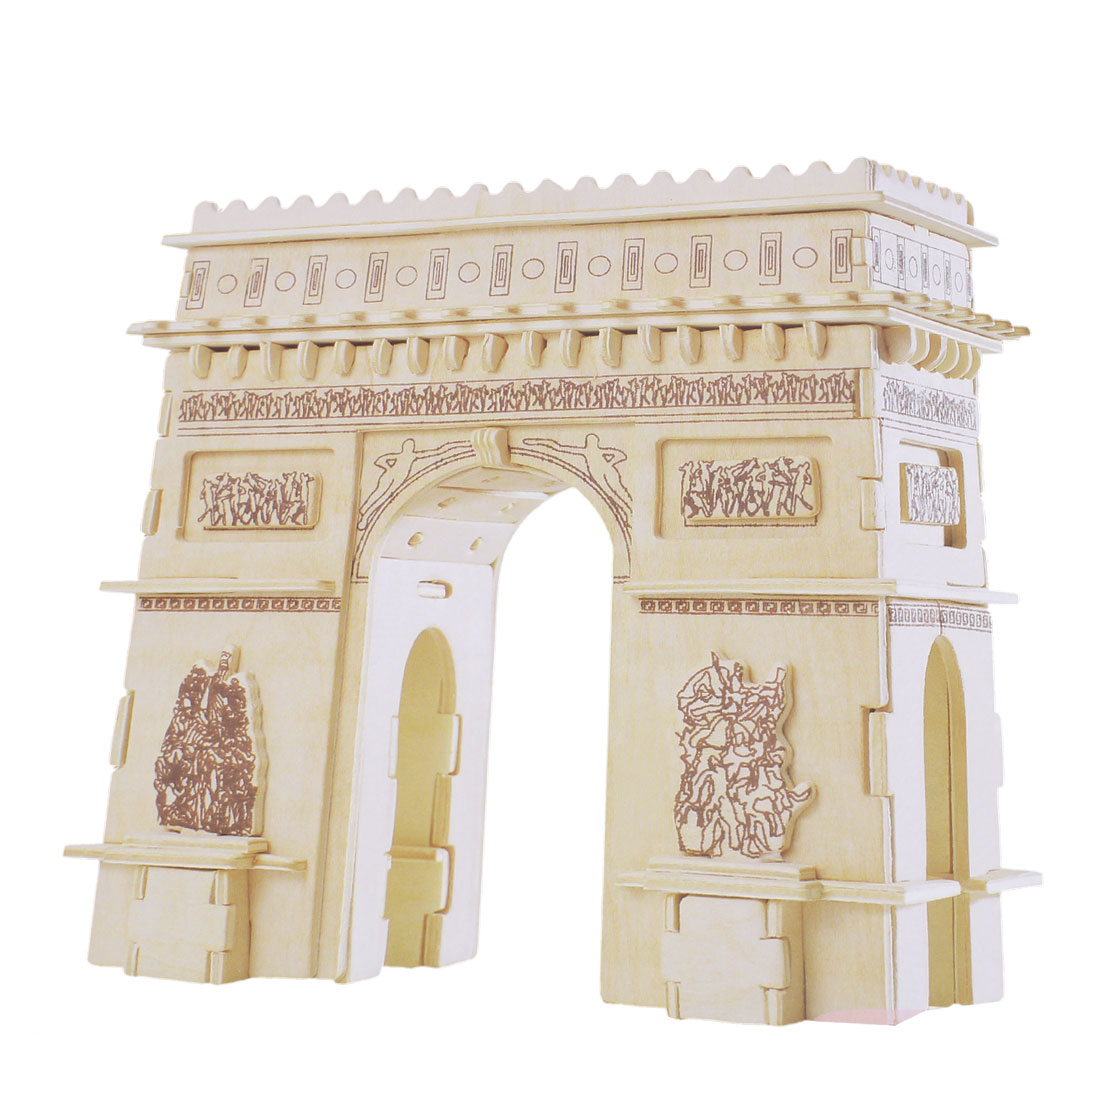 Kids Cubic Triumphal Arch of France Model Creative Wooden Puzzle Toy